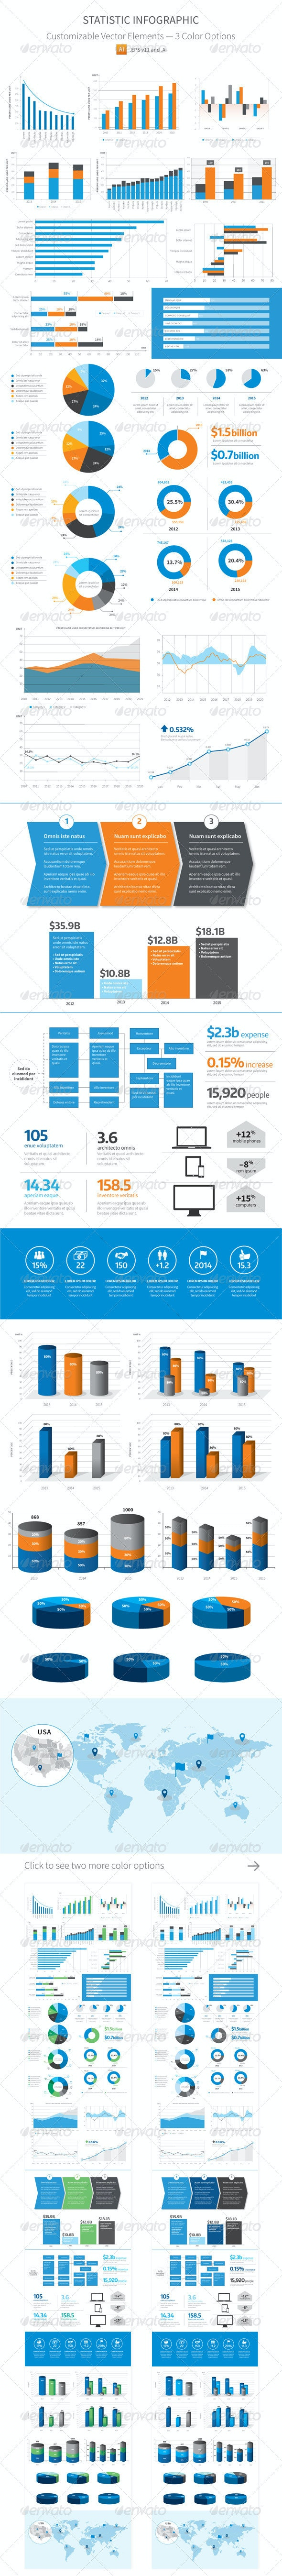 Statistic Infographic - Vector - Infographics